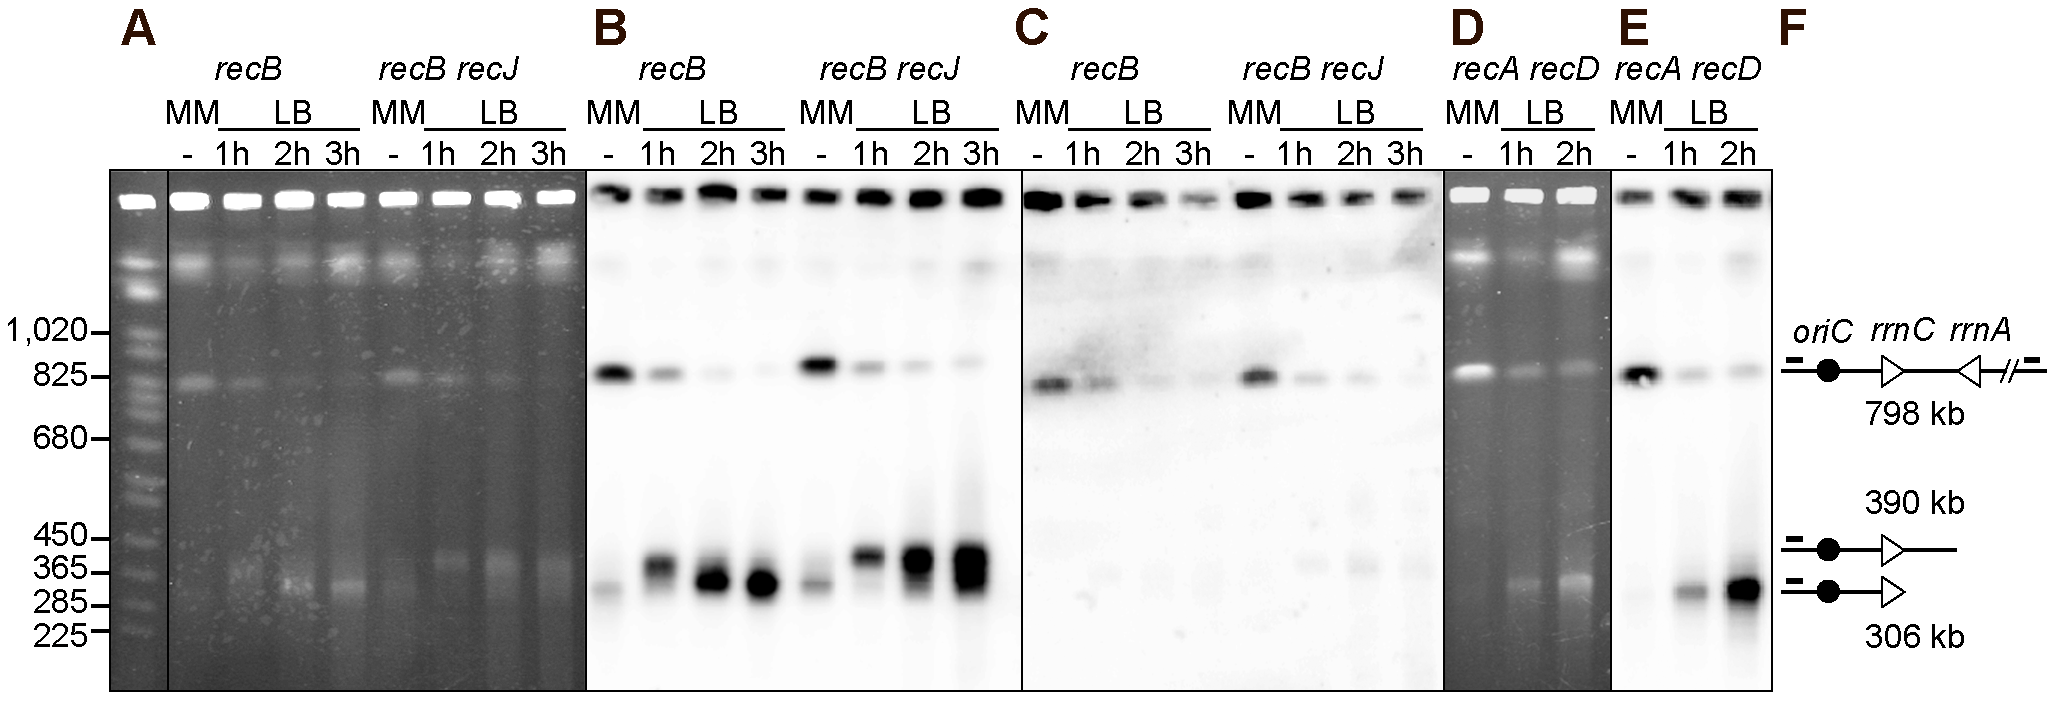 Chromosome breakage in InvA <i>recB</i> and InvA <i>recA recD</i> mutants.